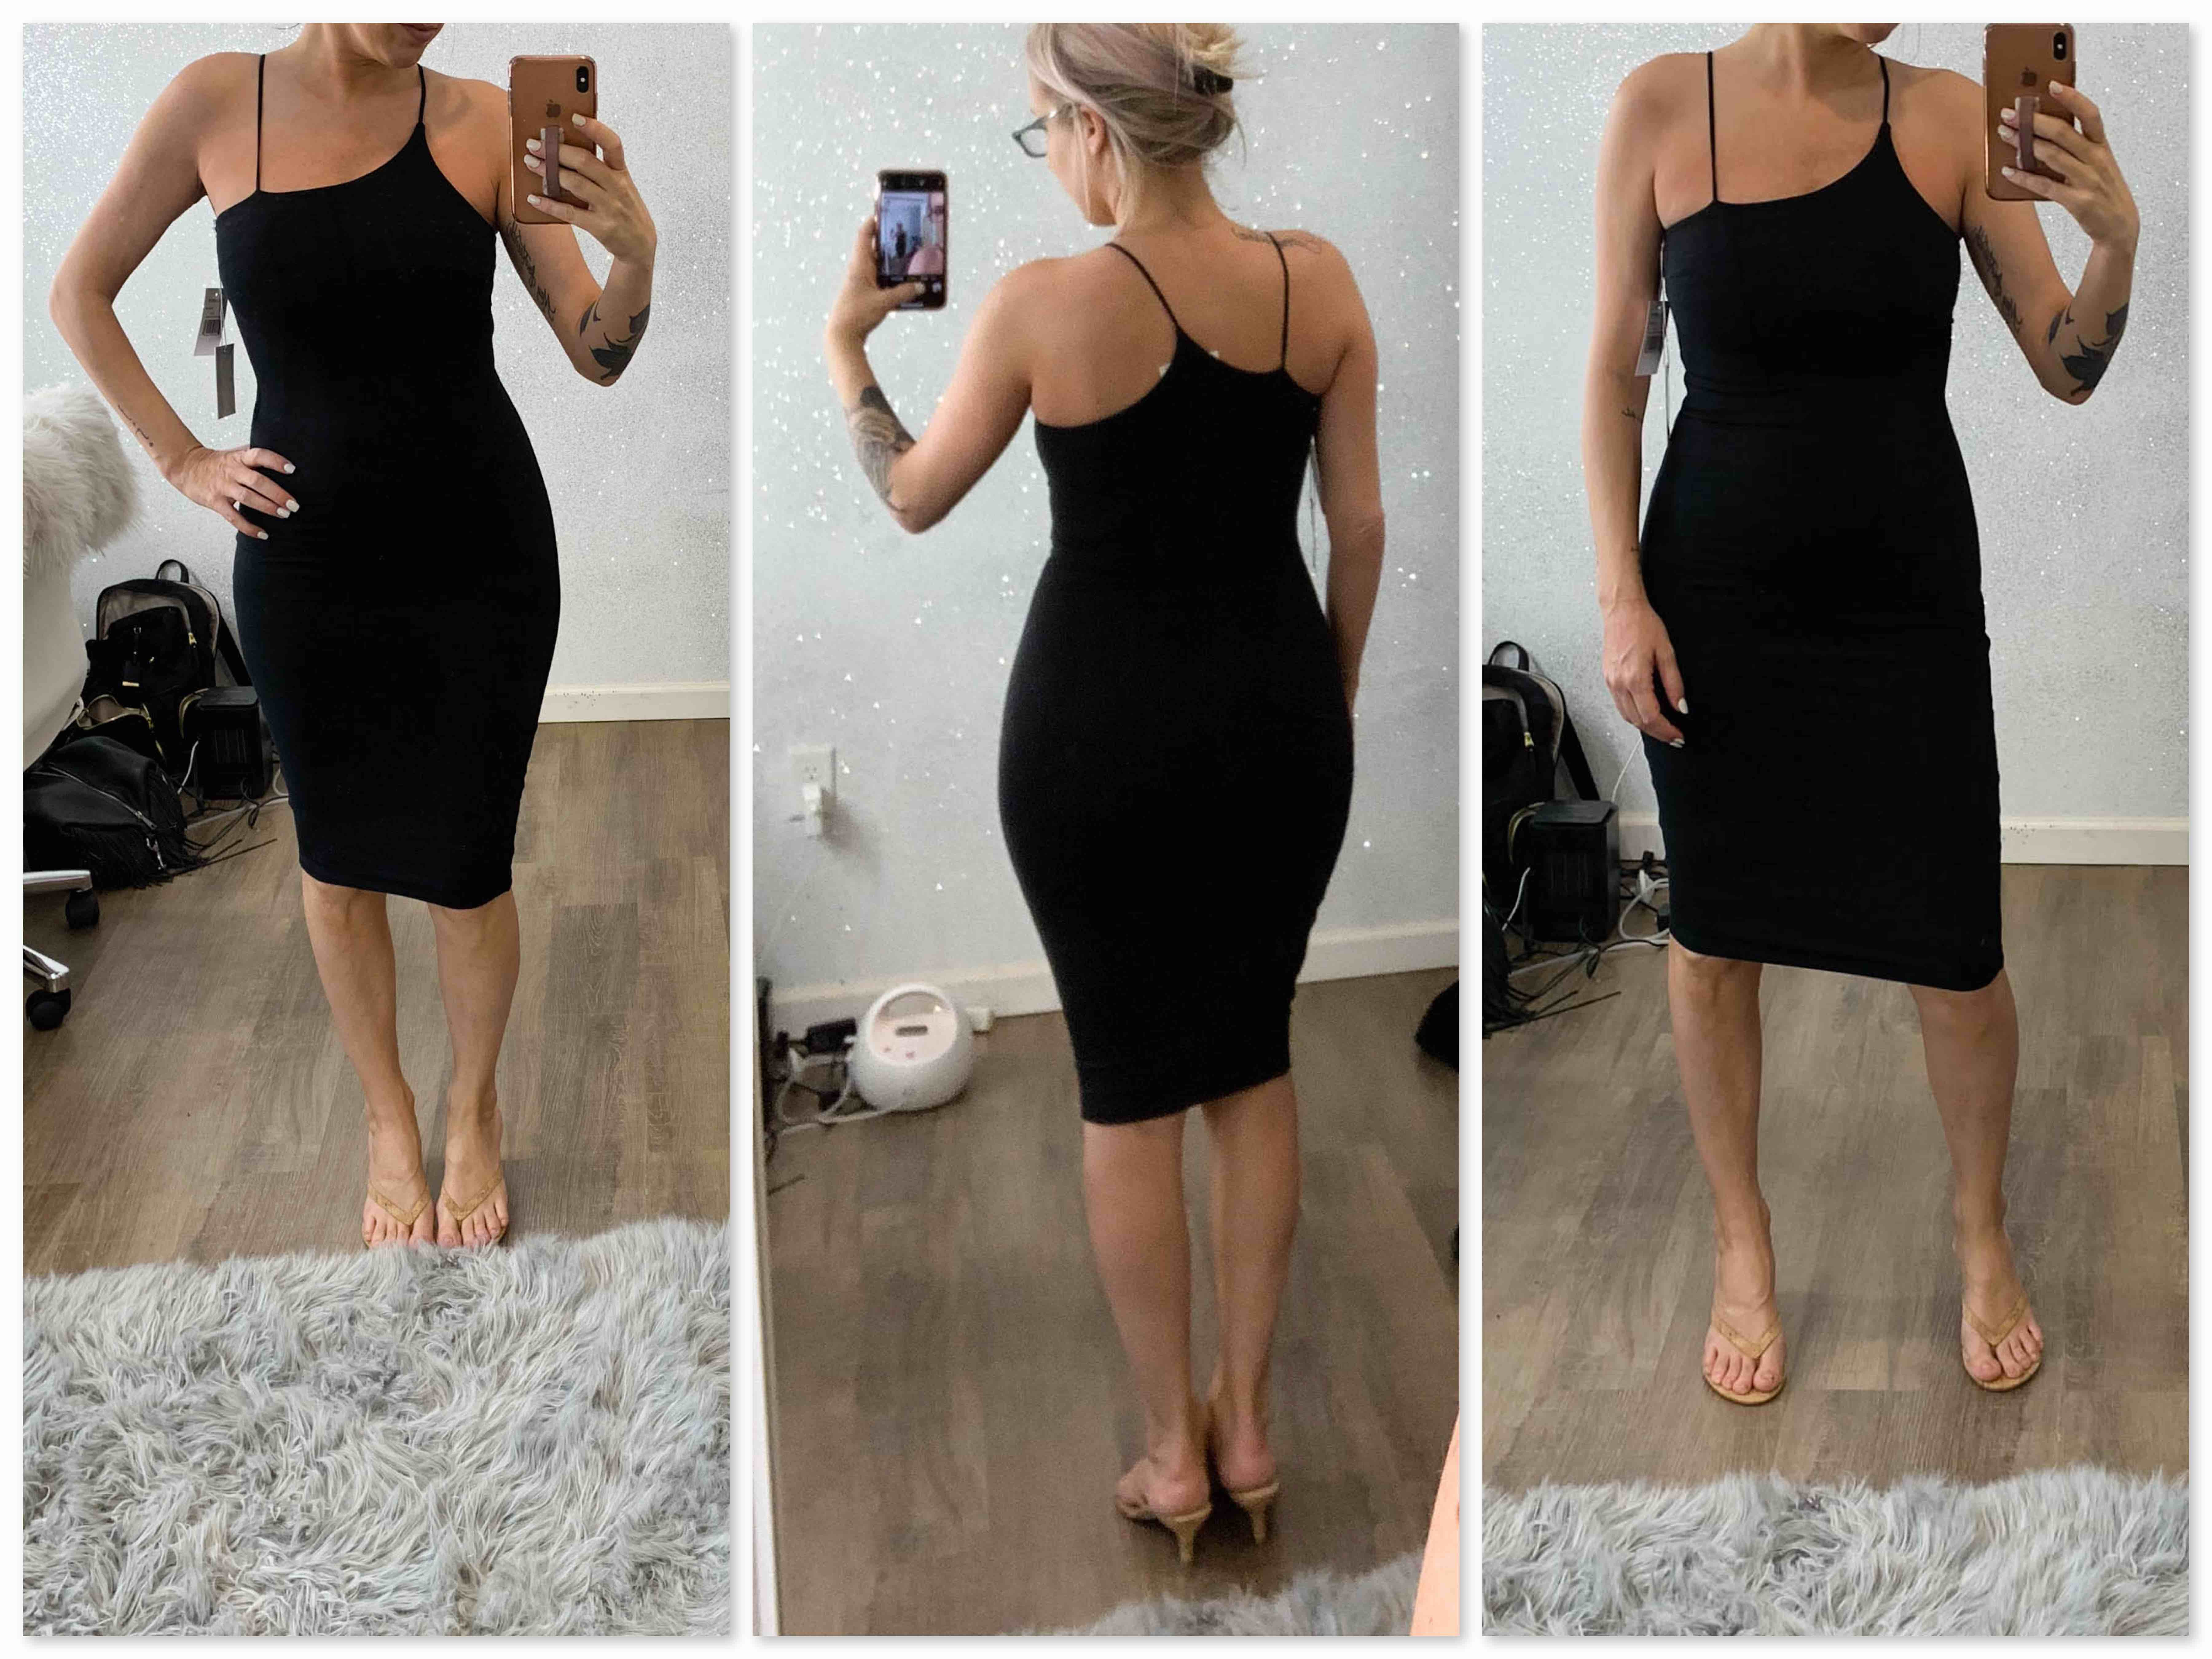 The perfect little black dress is too good to pass up. This is 1 of those times. With sizes for all body types, Good American's bodycon dresses are win-win.